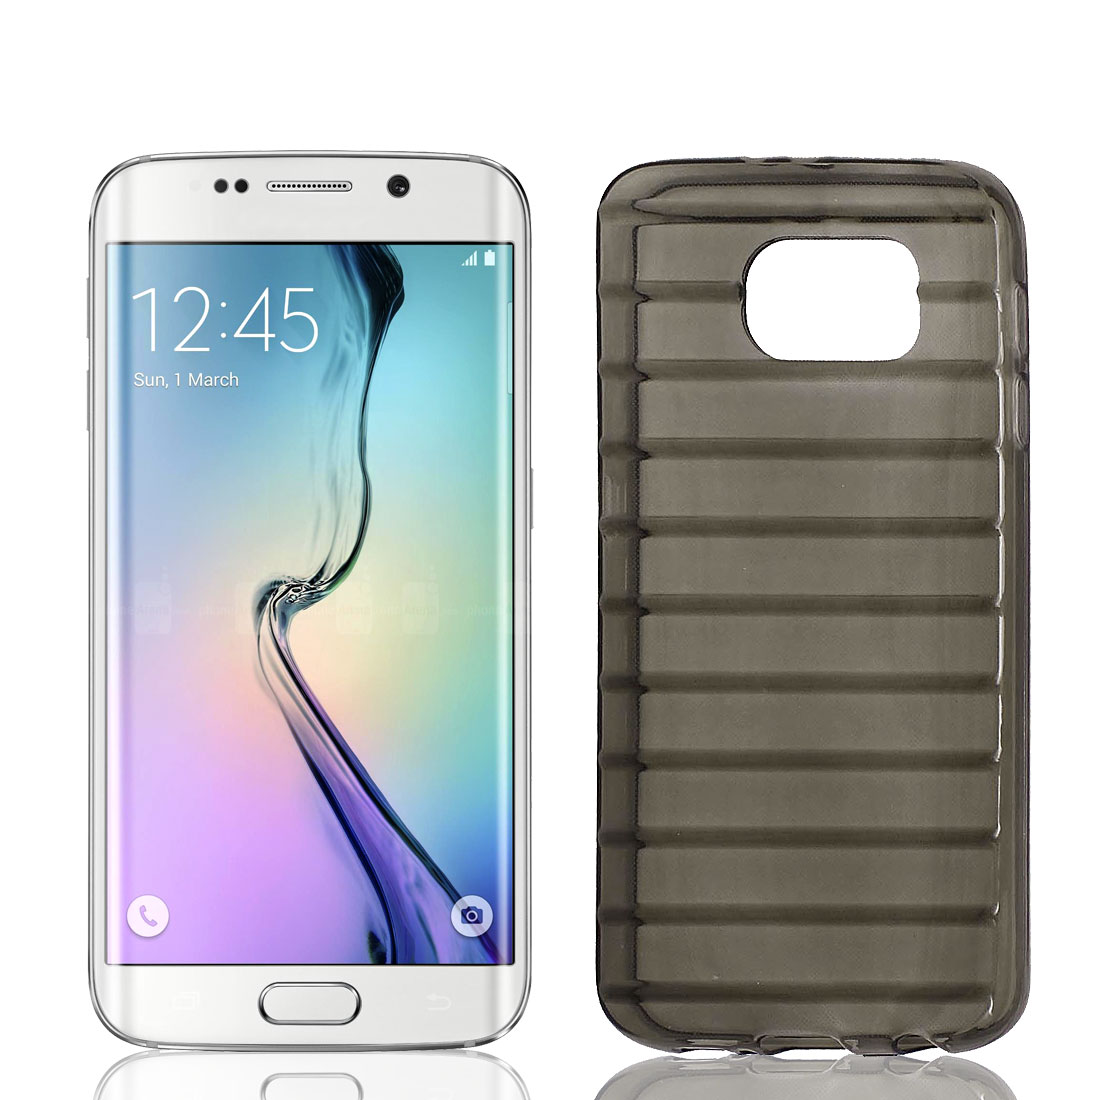 TPU Slim Ladder Design Stripe Bumper Cover Case Skin Shell Gray for Galaxy S6